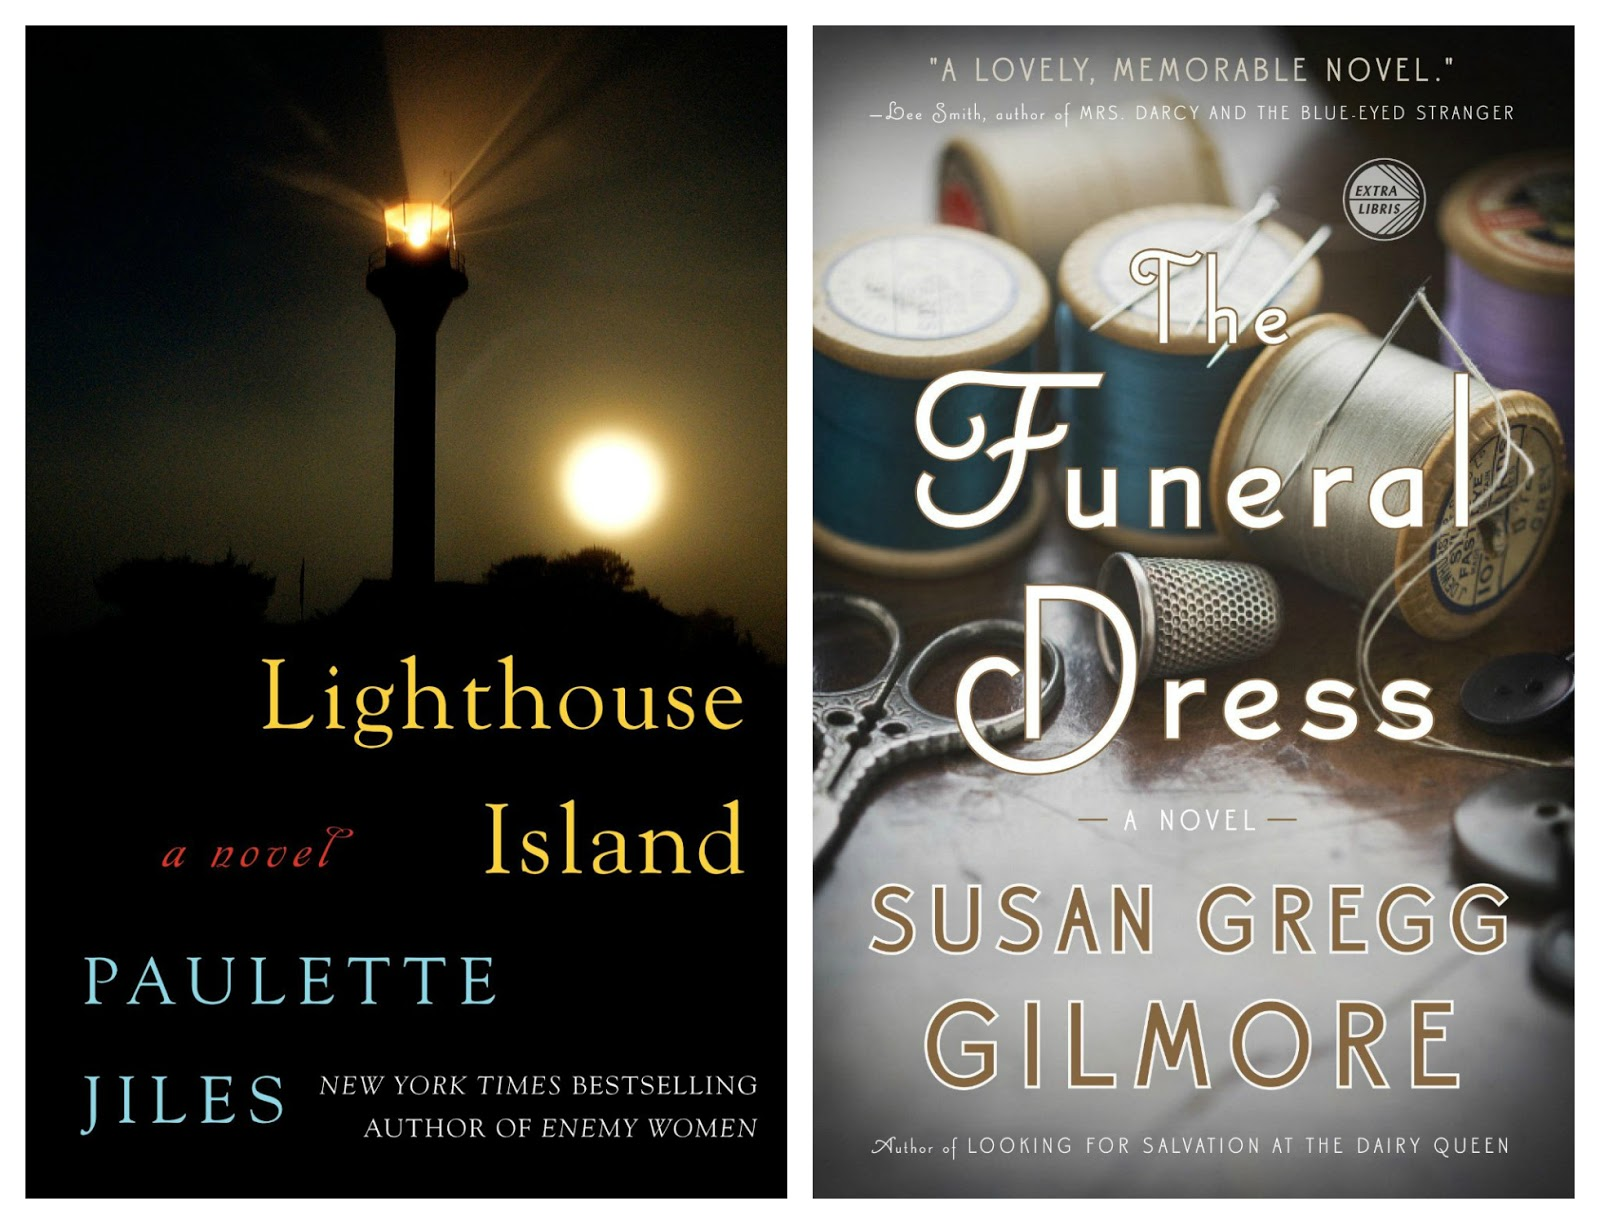 lighthouse island paulette giles the funeral dress